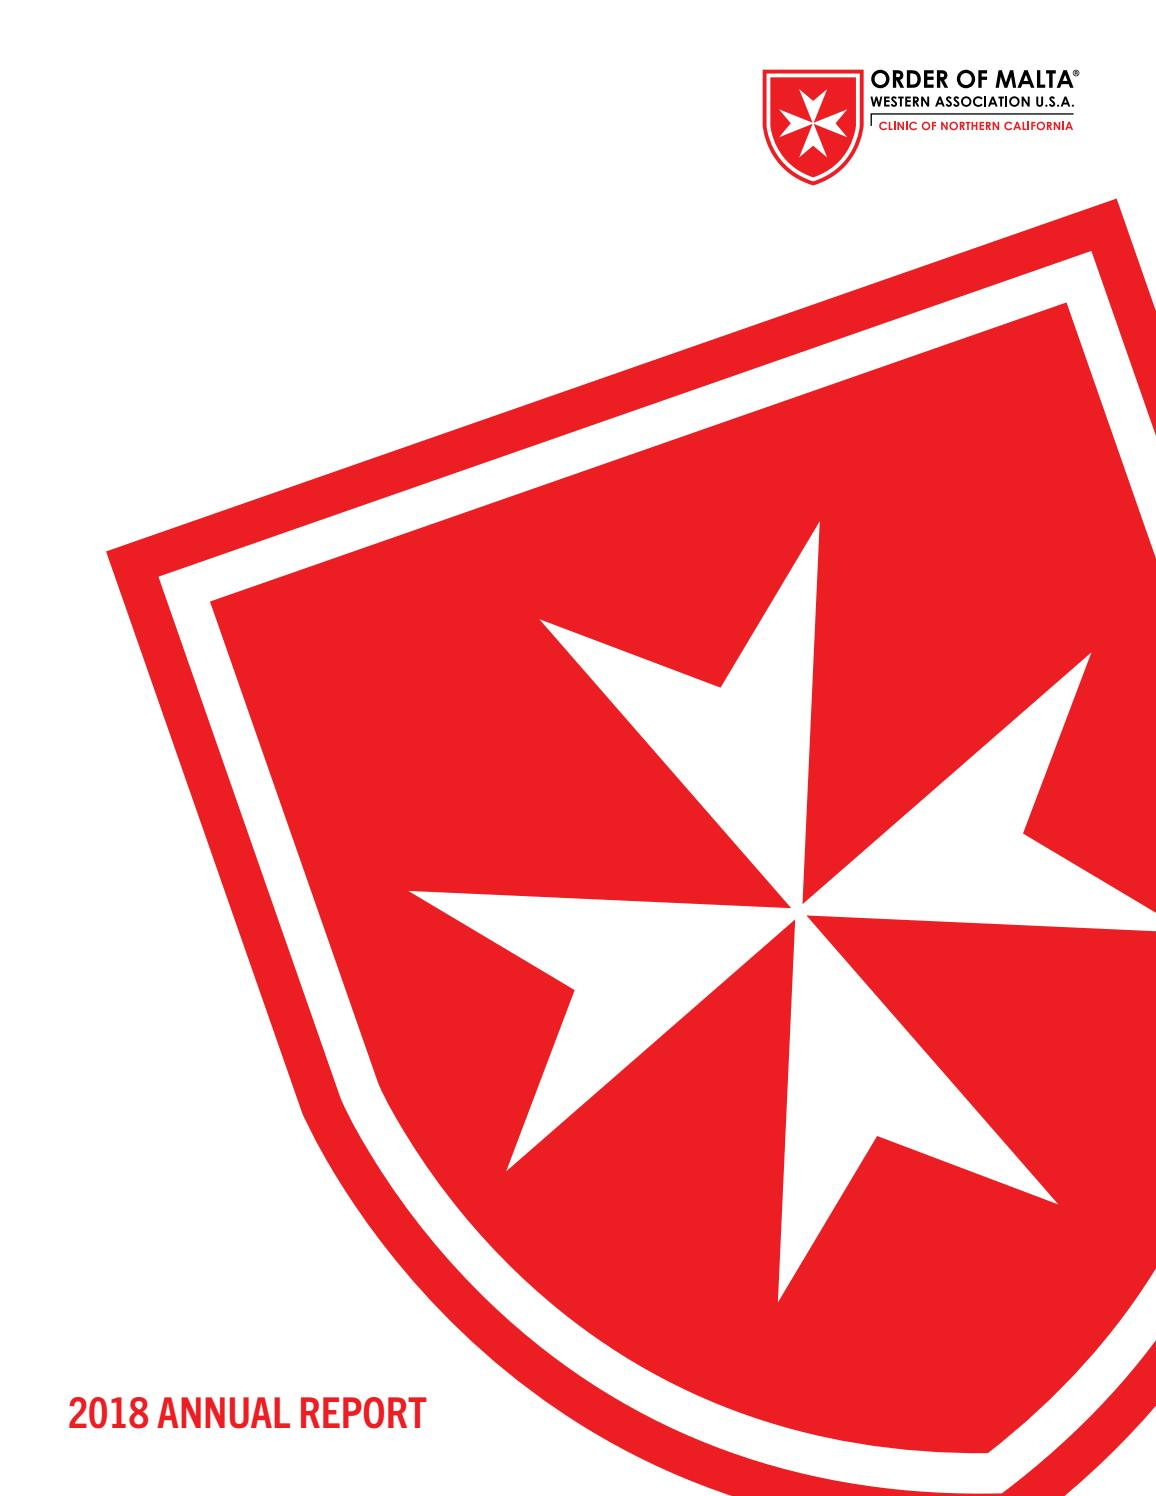 2018 Annual Report - Order of Malta Clinic of Northern